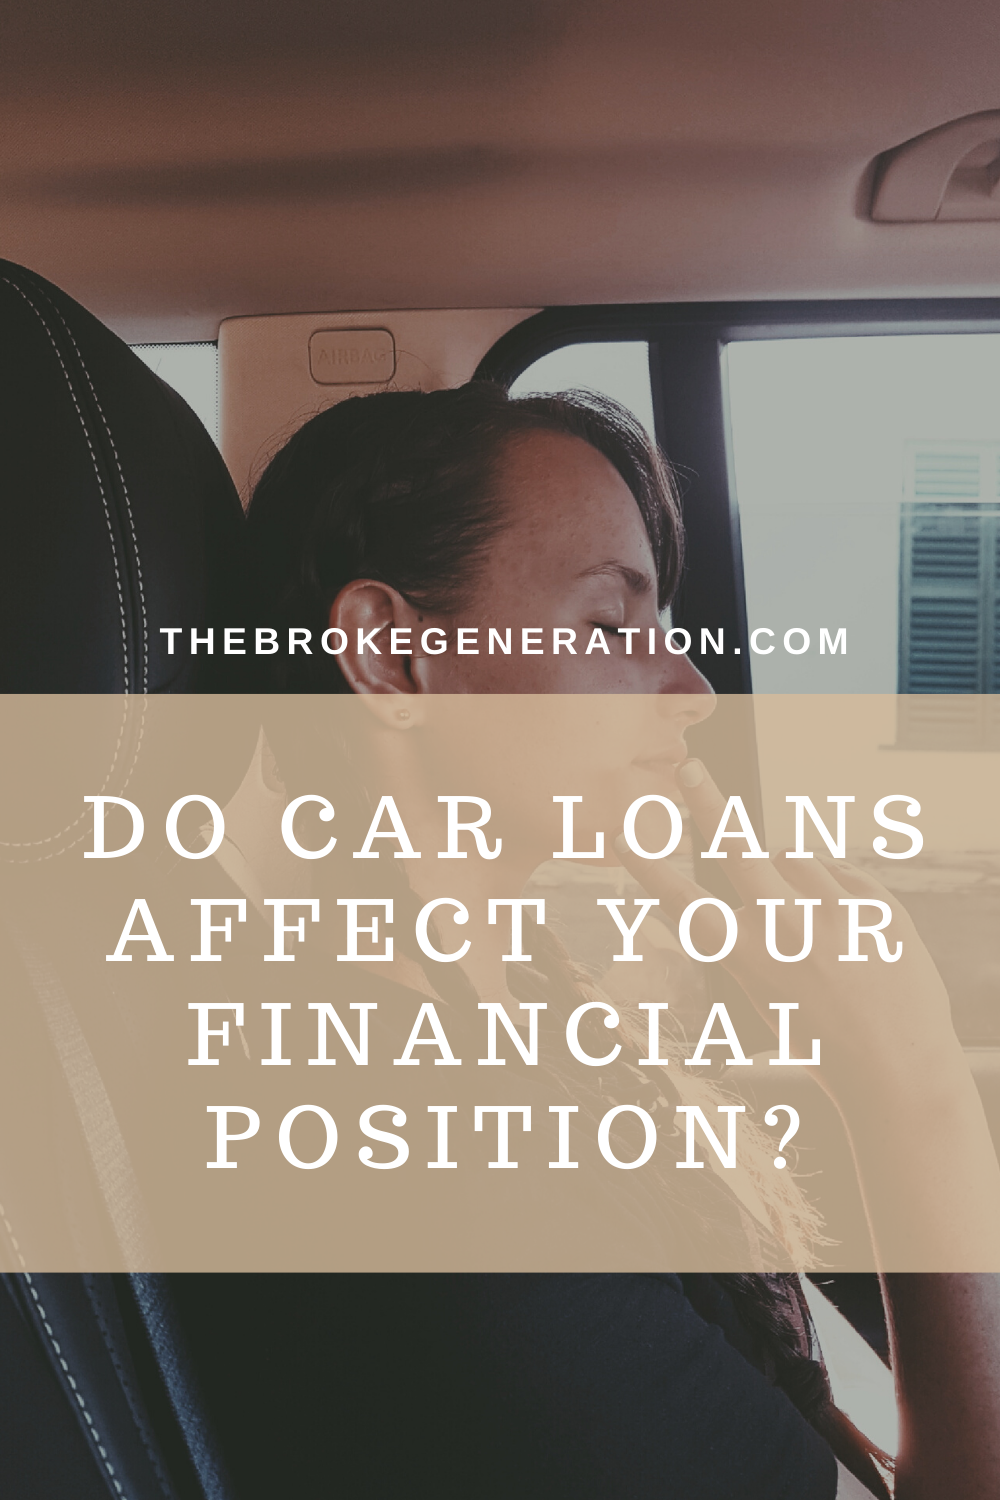 Do Car Loans Affect Your Financial Position